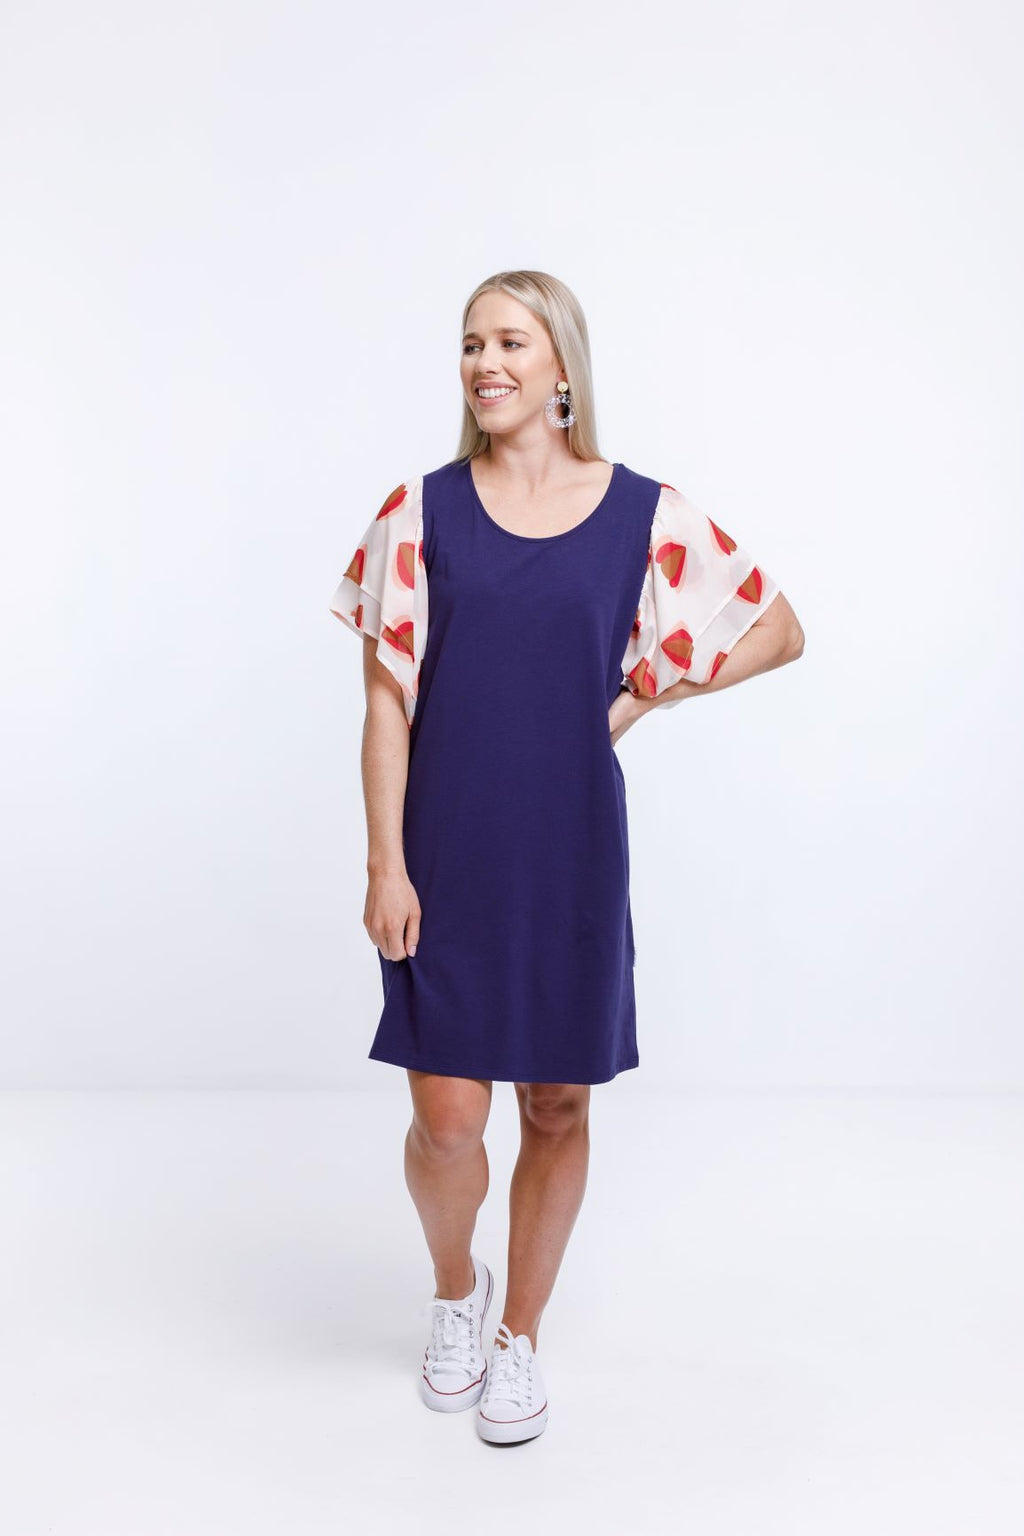 LOLA DRESS - Evening Blue with Lantern Print